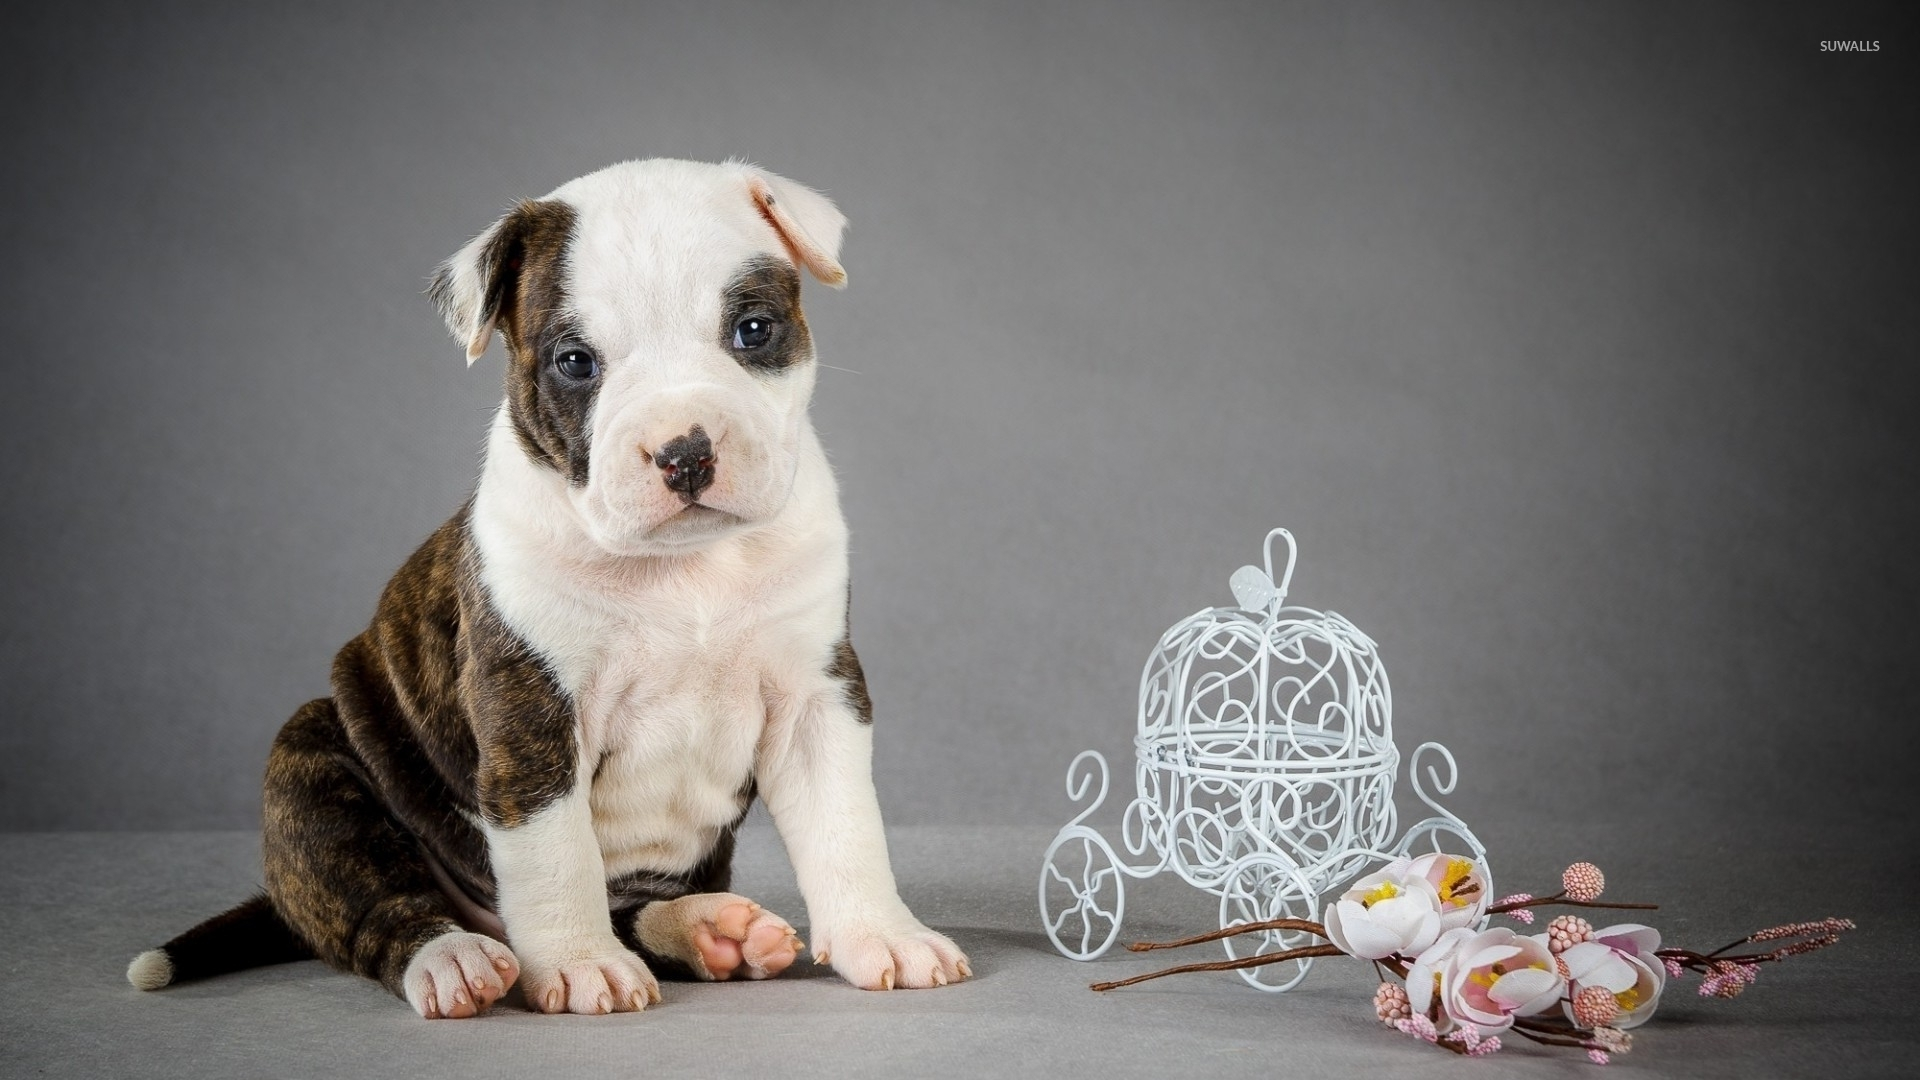 Cute Pitbull Puppy Wallpaper